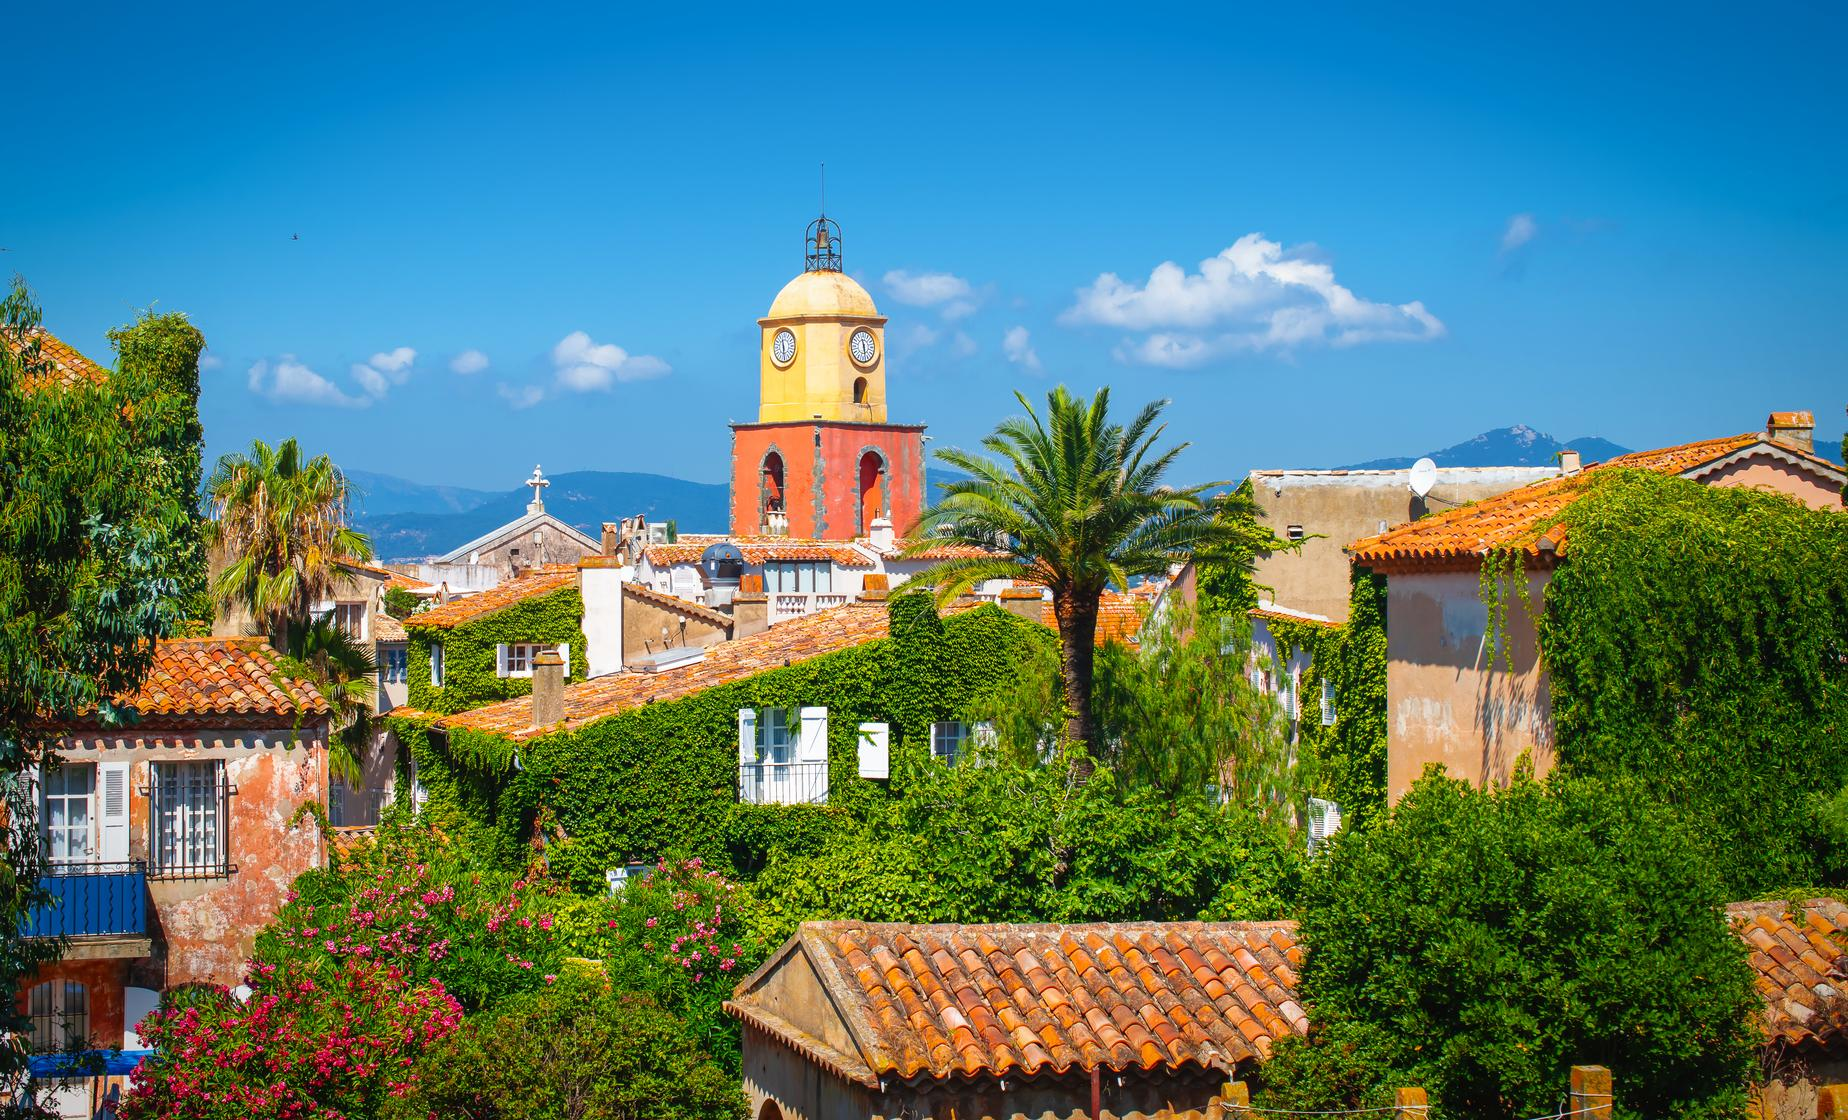 Saint Tropez and Port Grimaud Tour (Esterel, Little Venice, St. Tropez)